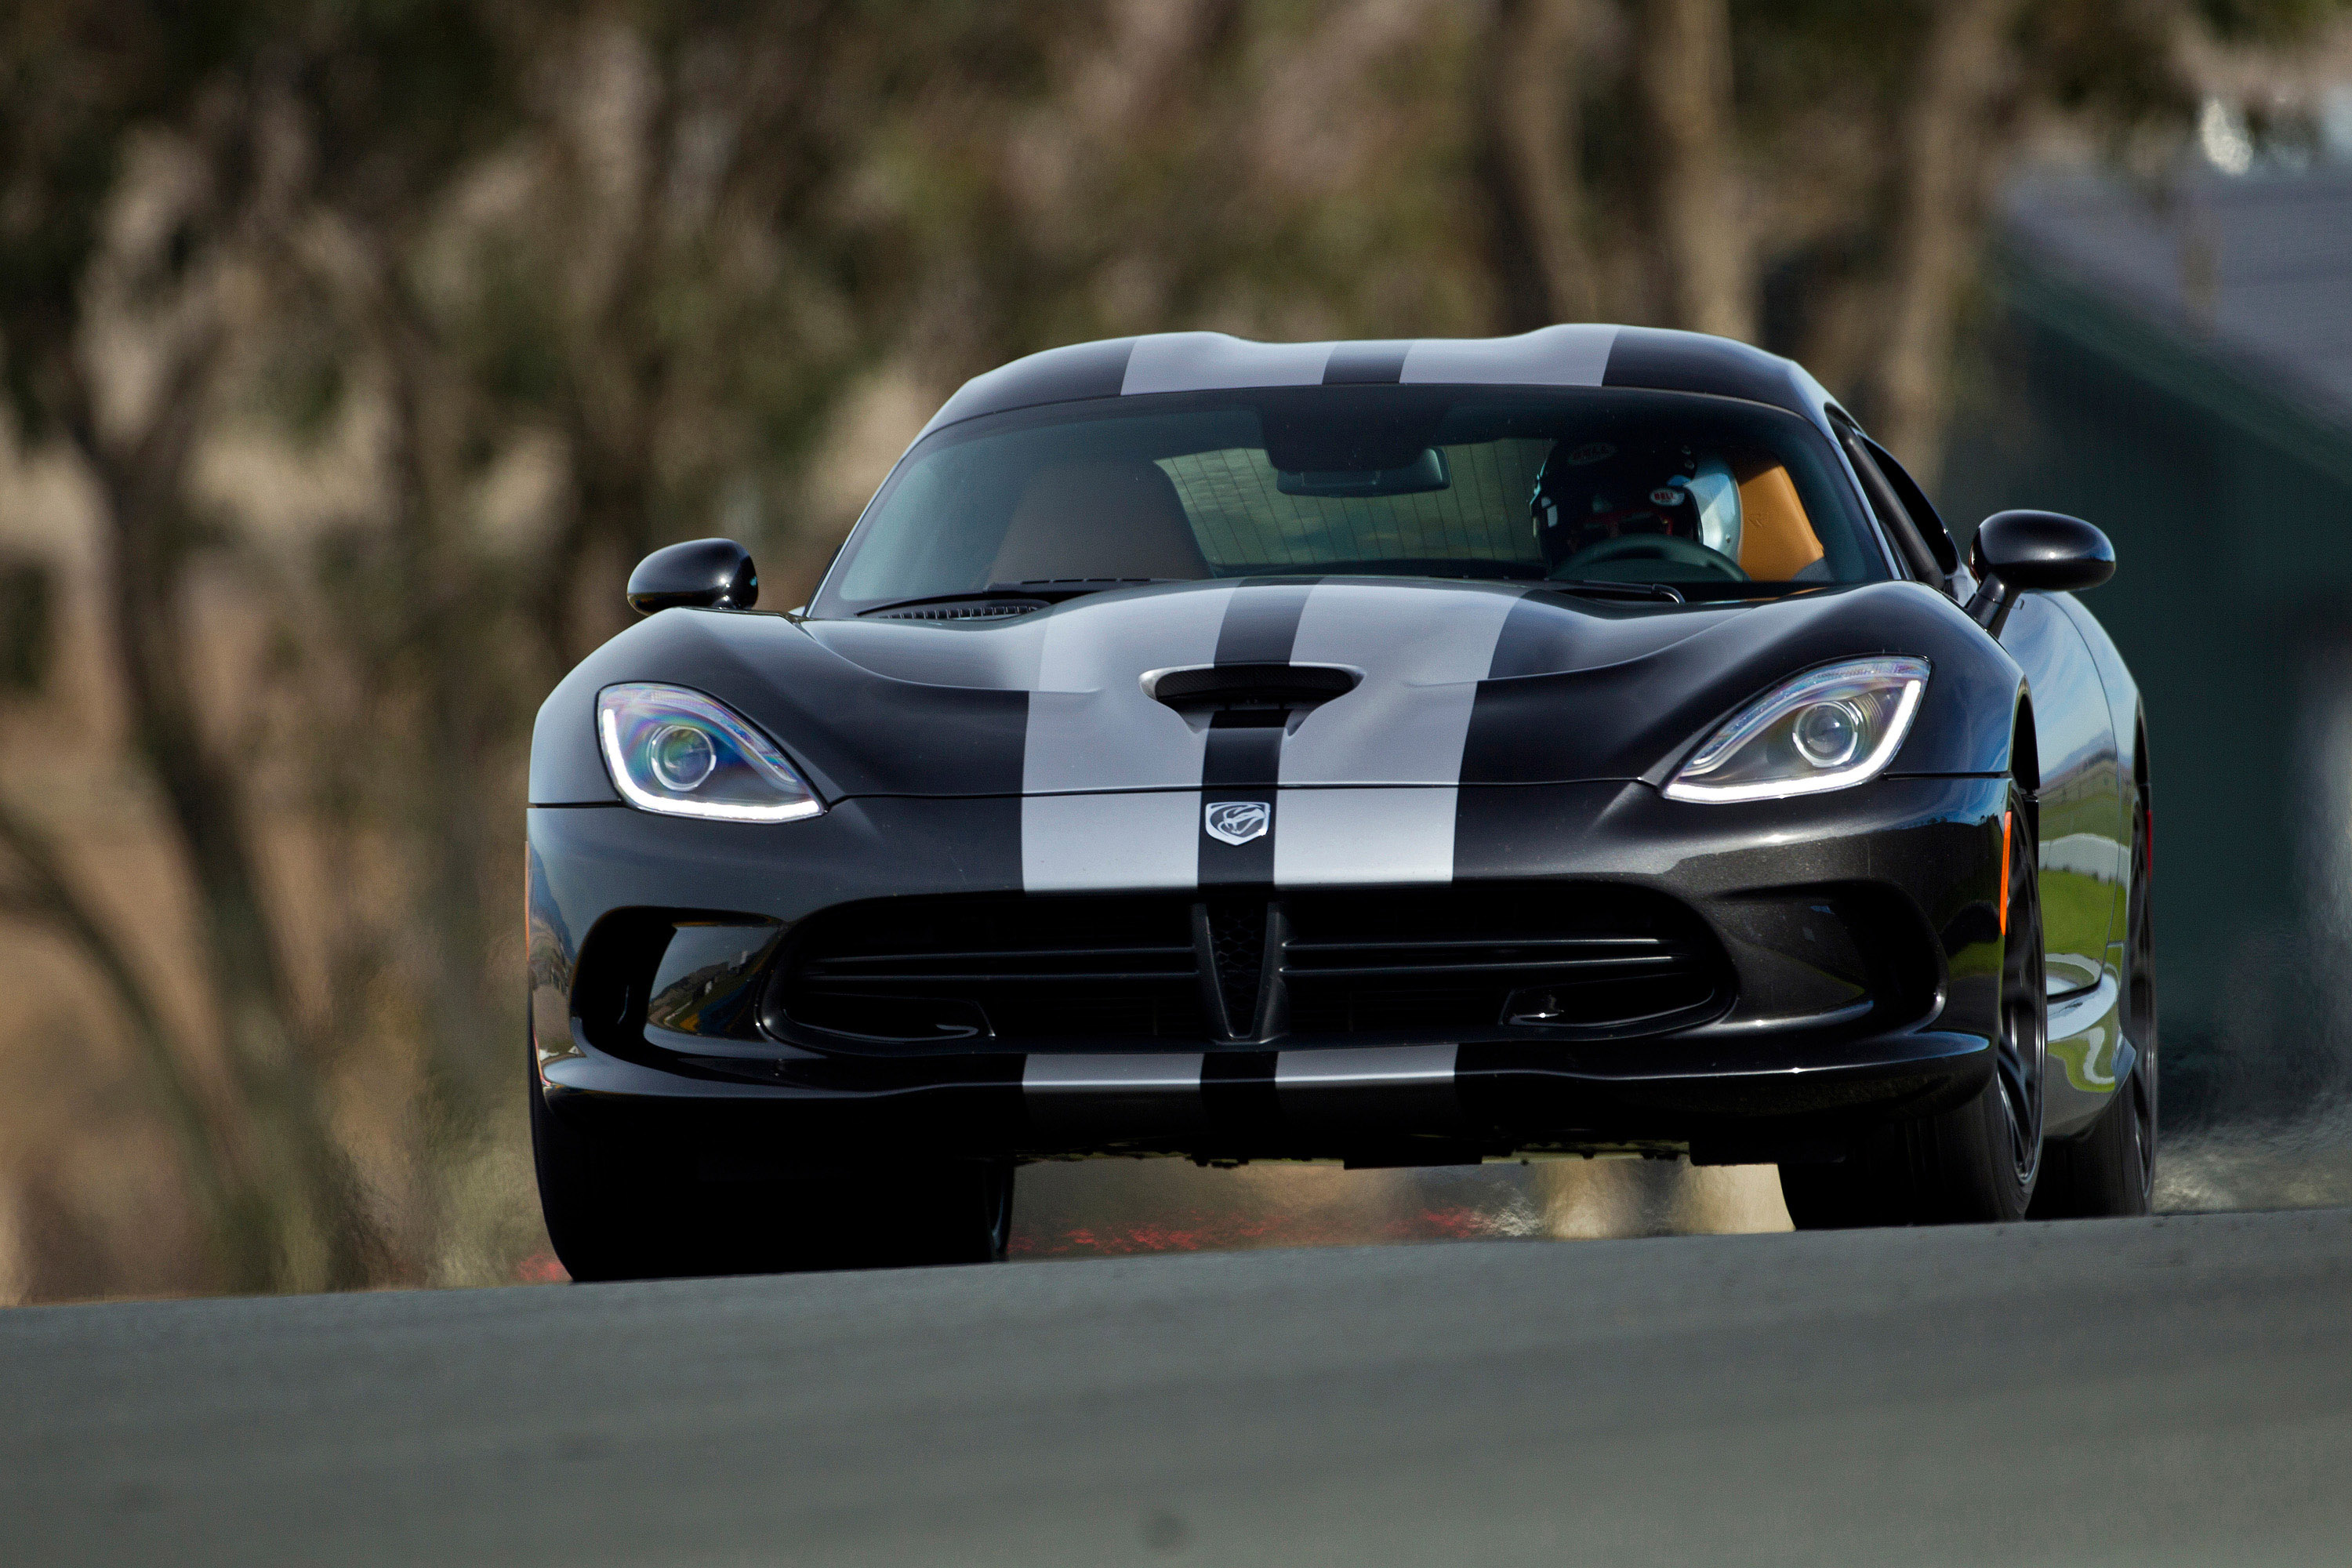 2013 Dodge Viper SRT - Picture 77314